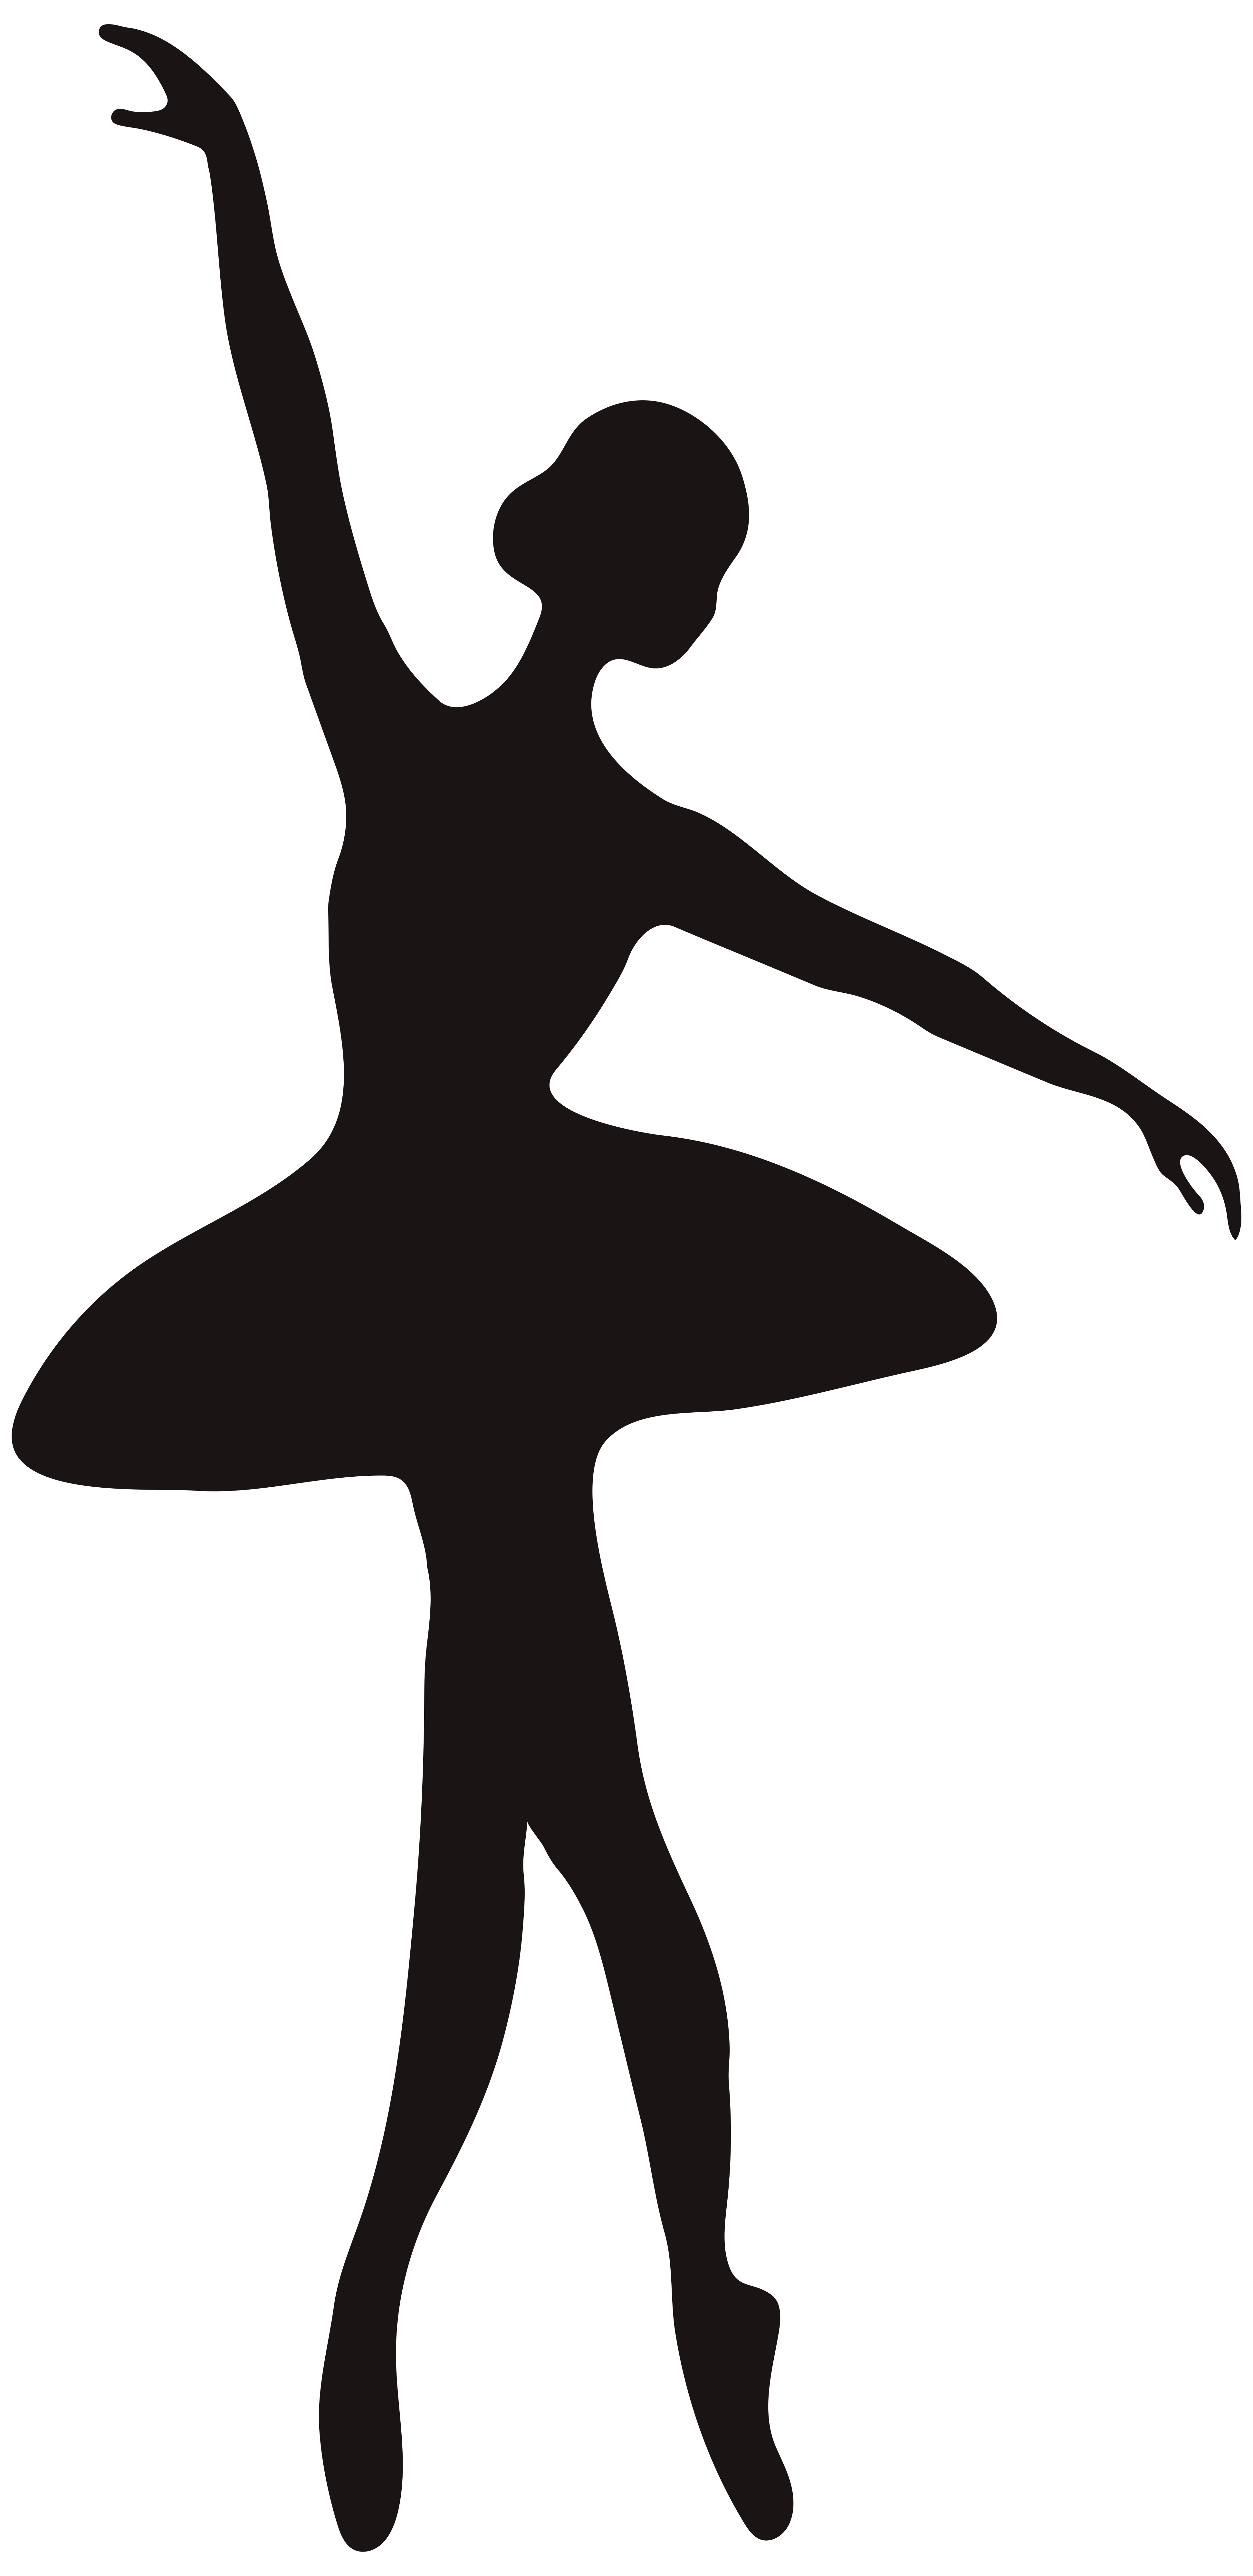 Drawing mannequins ballerina. Topery pinterest melted